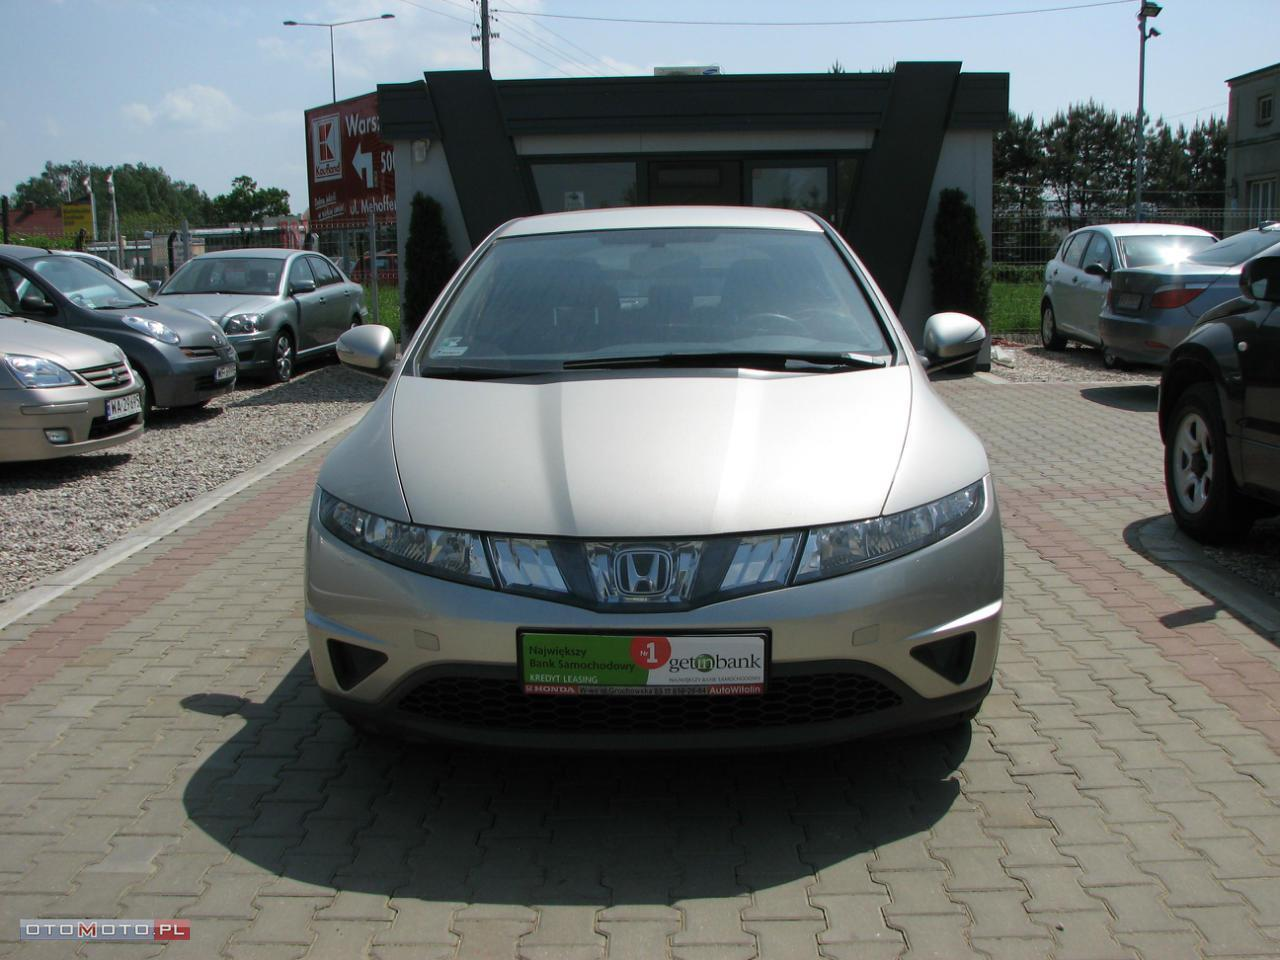 Honda Civic 1.4 16V *GAZ* I-szy.wł! SALON